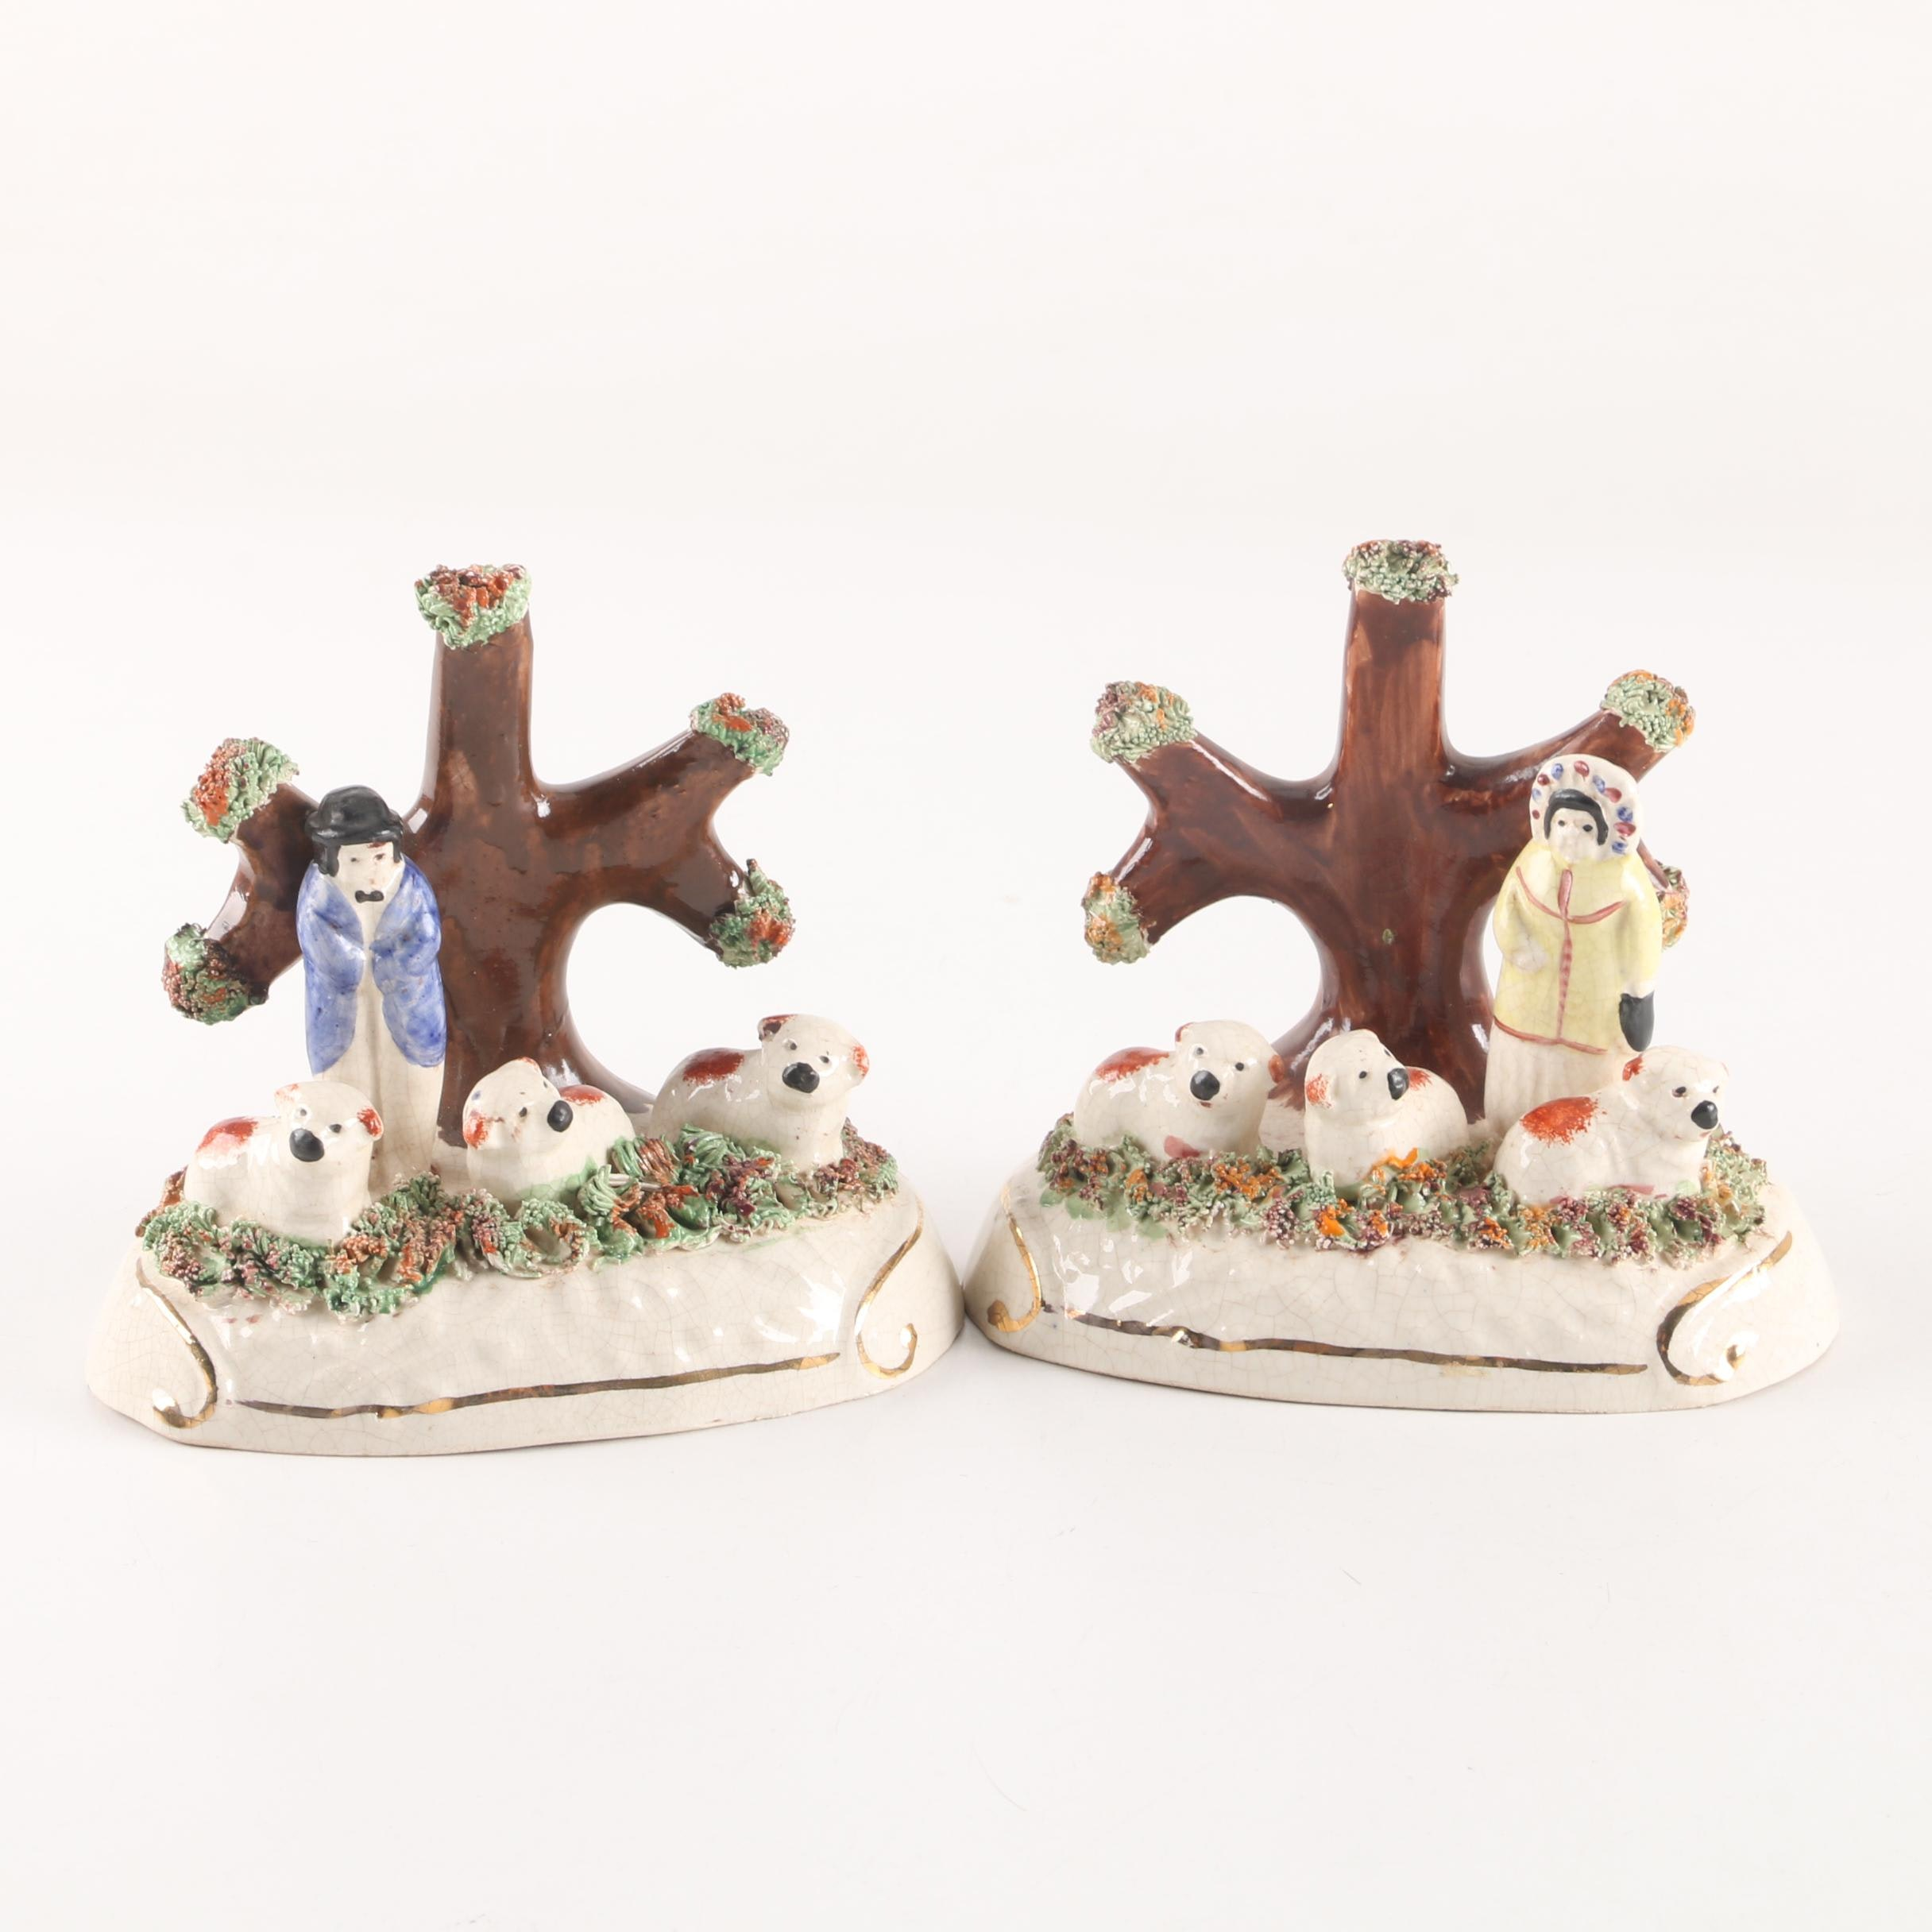 Pair of Staffordshire Ceramic Figurines with Bocage Decoration